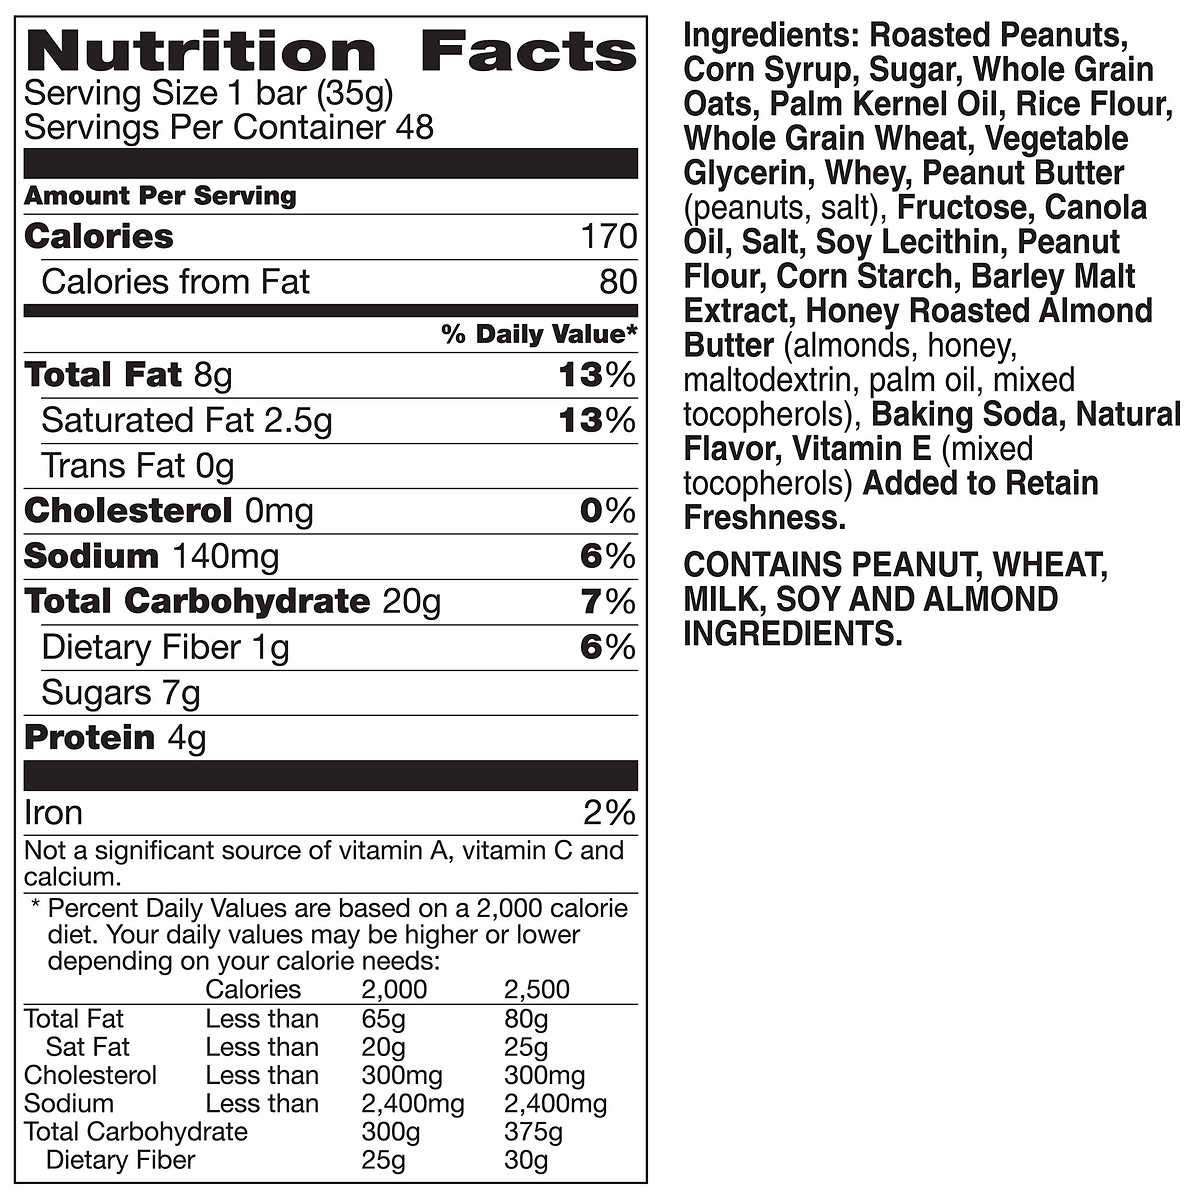 Nature Valley Sweet & Salty Granola Bars, Peanut, 1.2oz Bar, 96 Count by Nature Valley